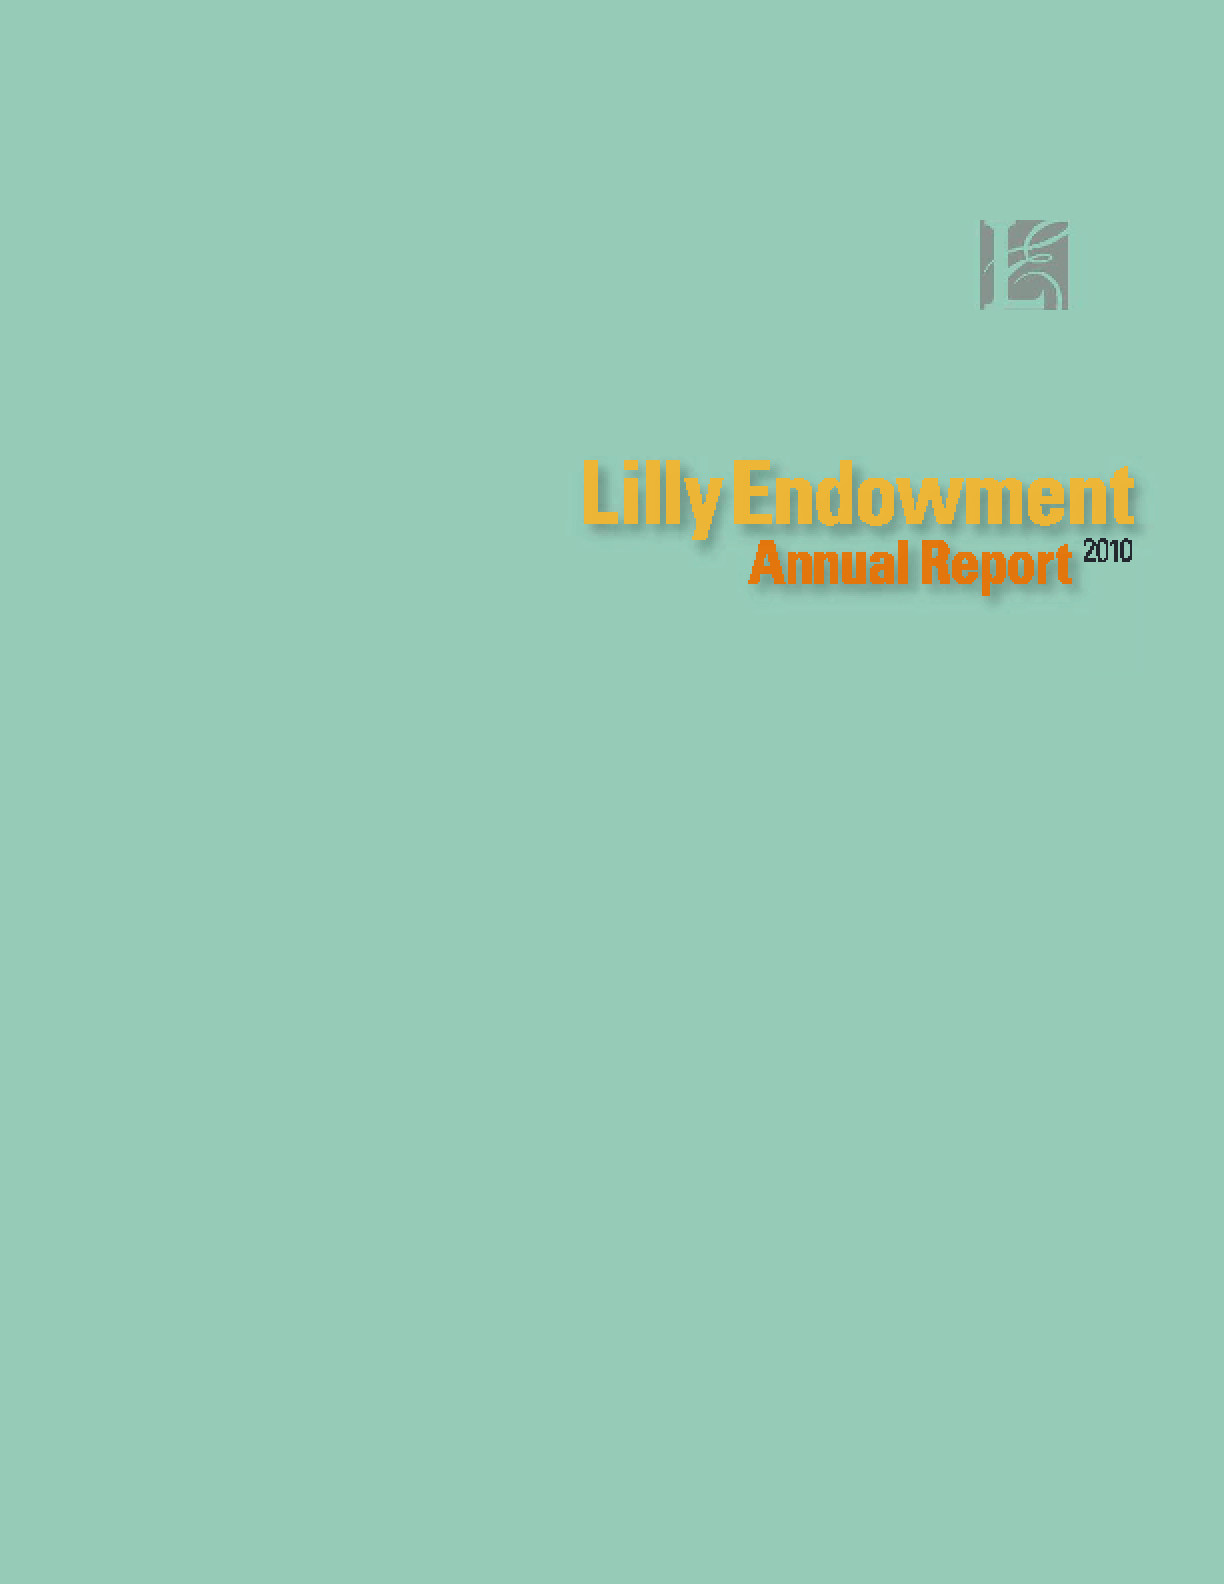 Lilly Endowment, Inc. 2010 Annual Report